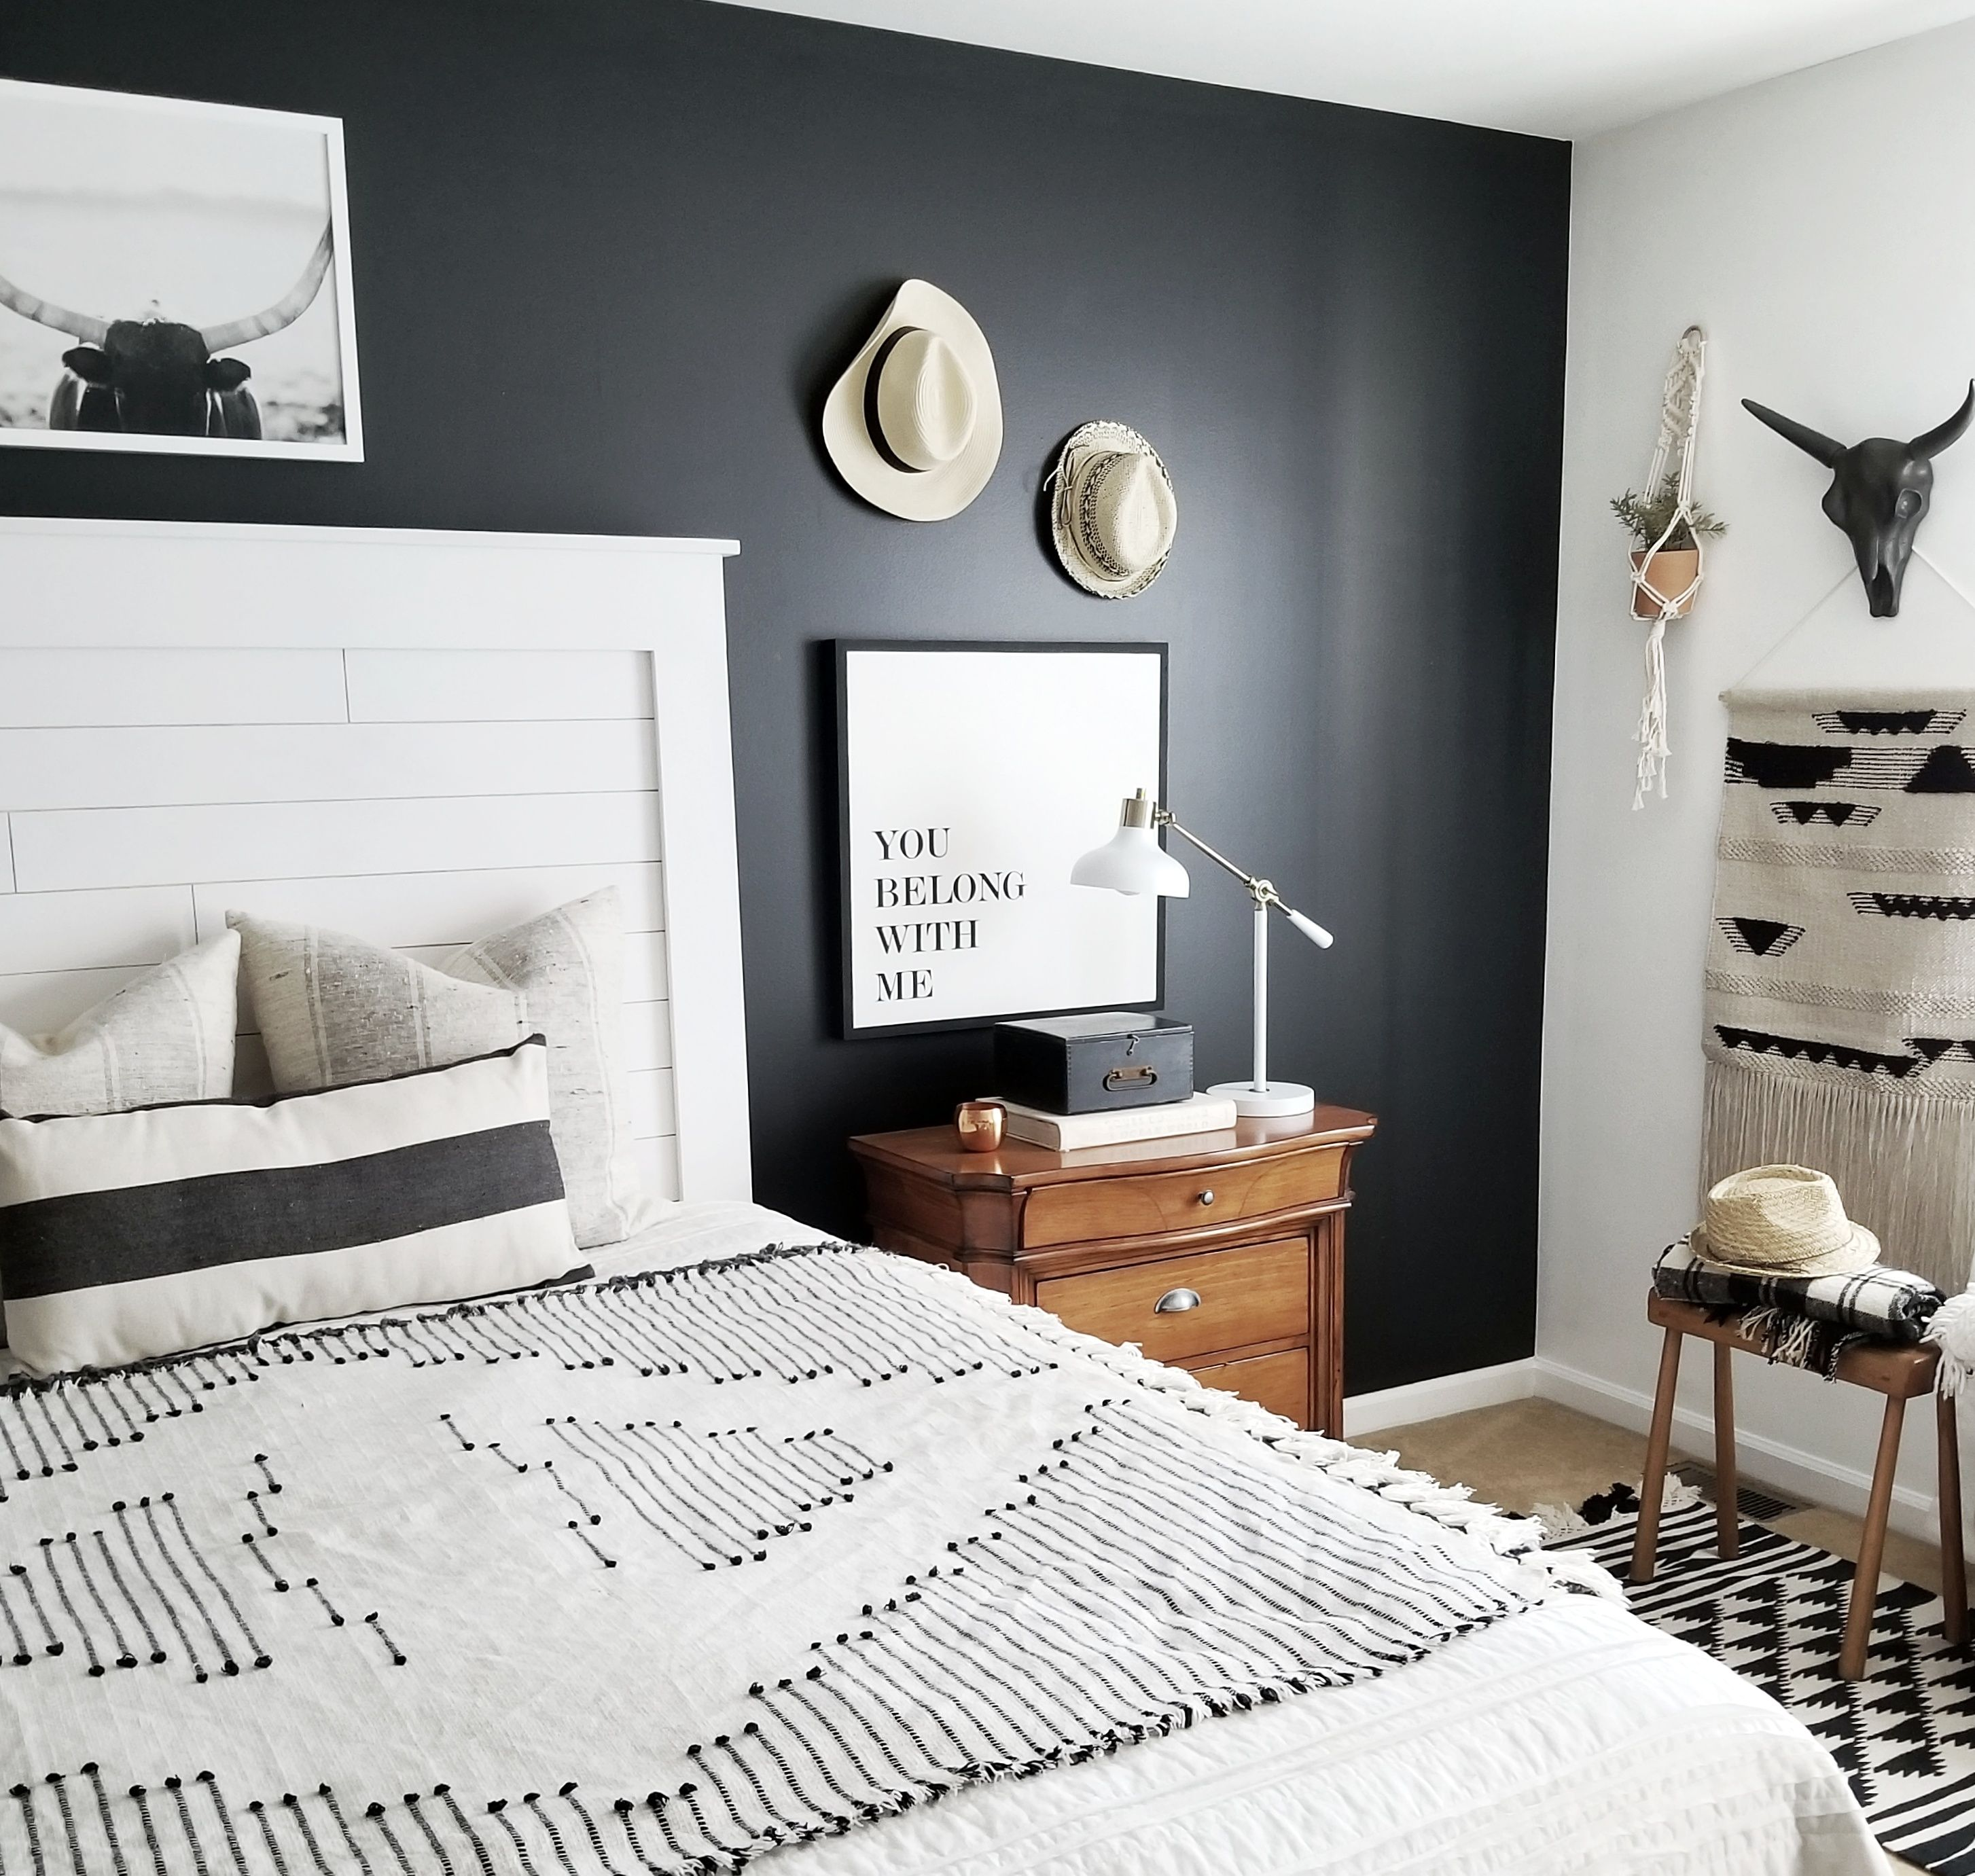 5 Ways to Incorporate Black in Interior Design is part of Ways To Incorporate Black In Interior Design Grace In My - Black is such an important design element in interior design  So let's talk about 5 simple and creative ways to incorporate black in interior design to help ground your space and provide dimension in your home